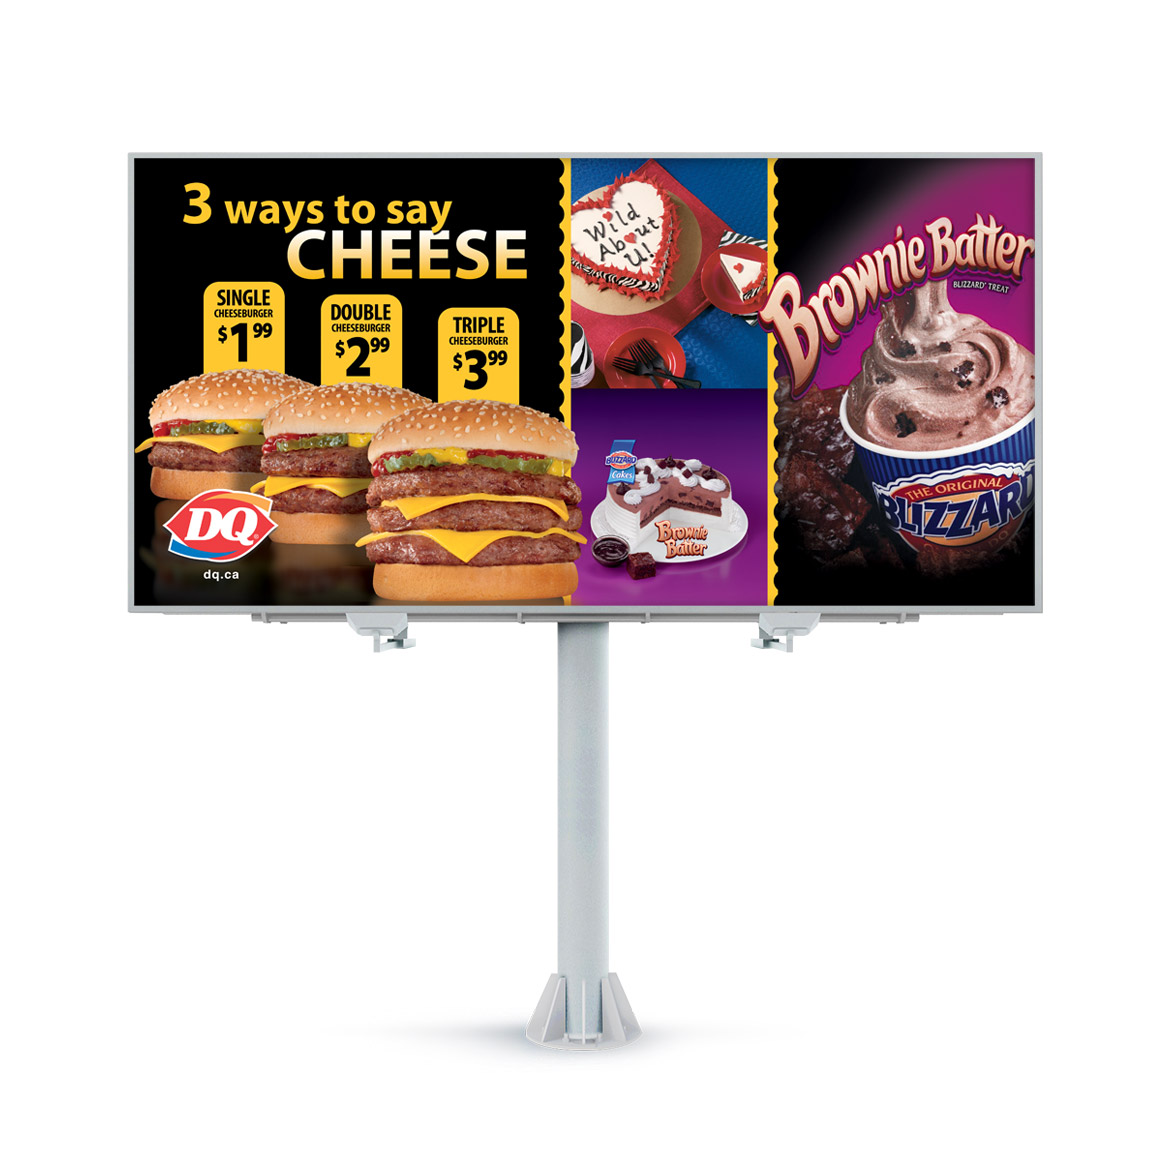 Billboard-Design-Dairy-Queen-3-ways